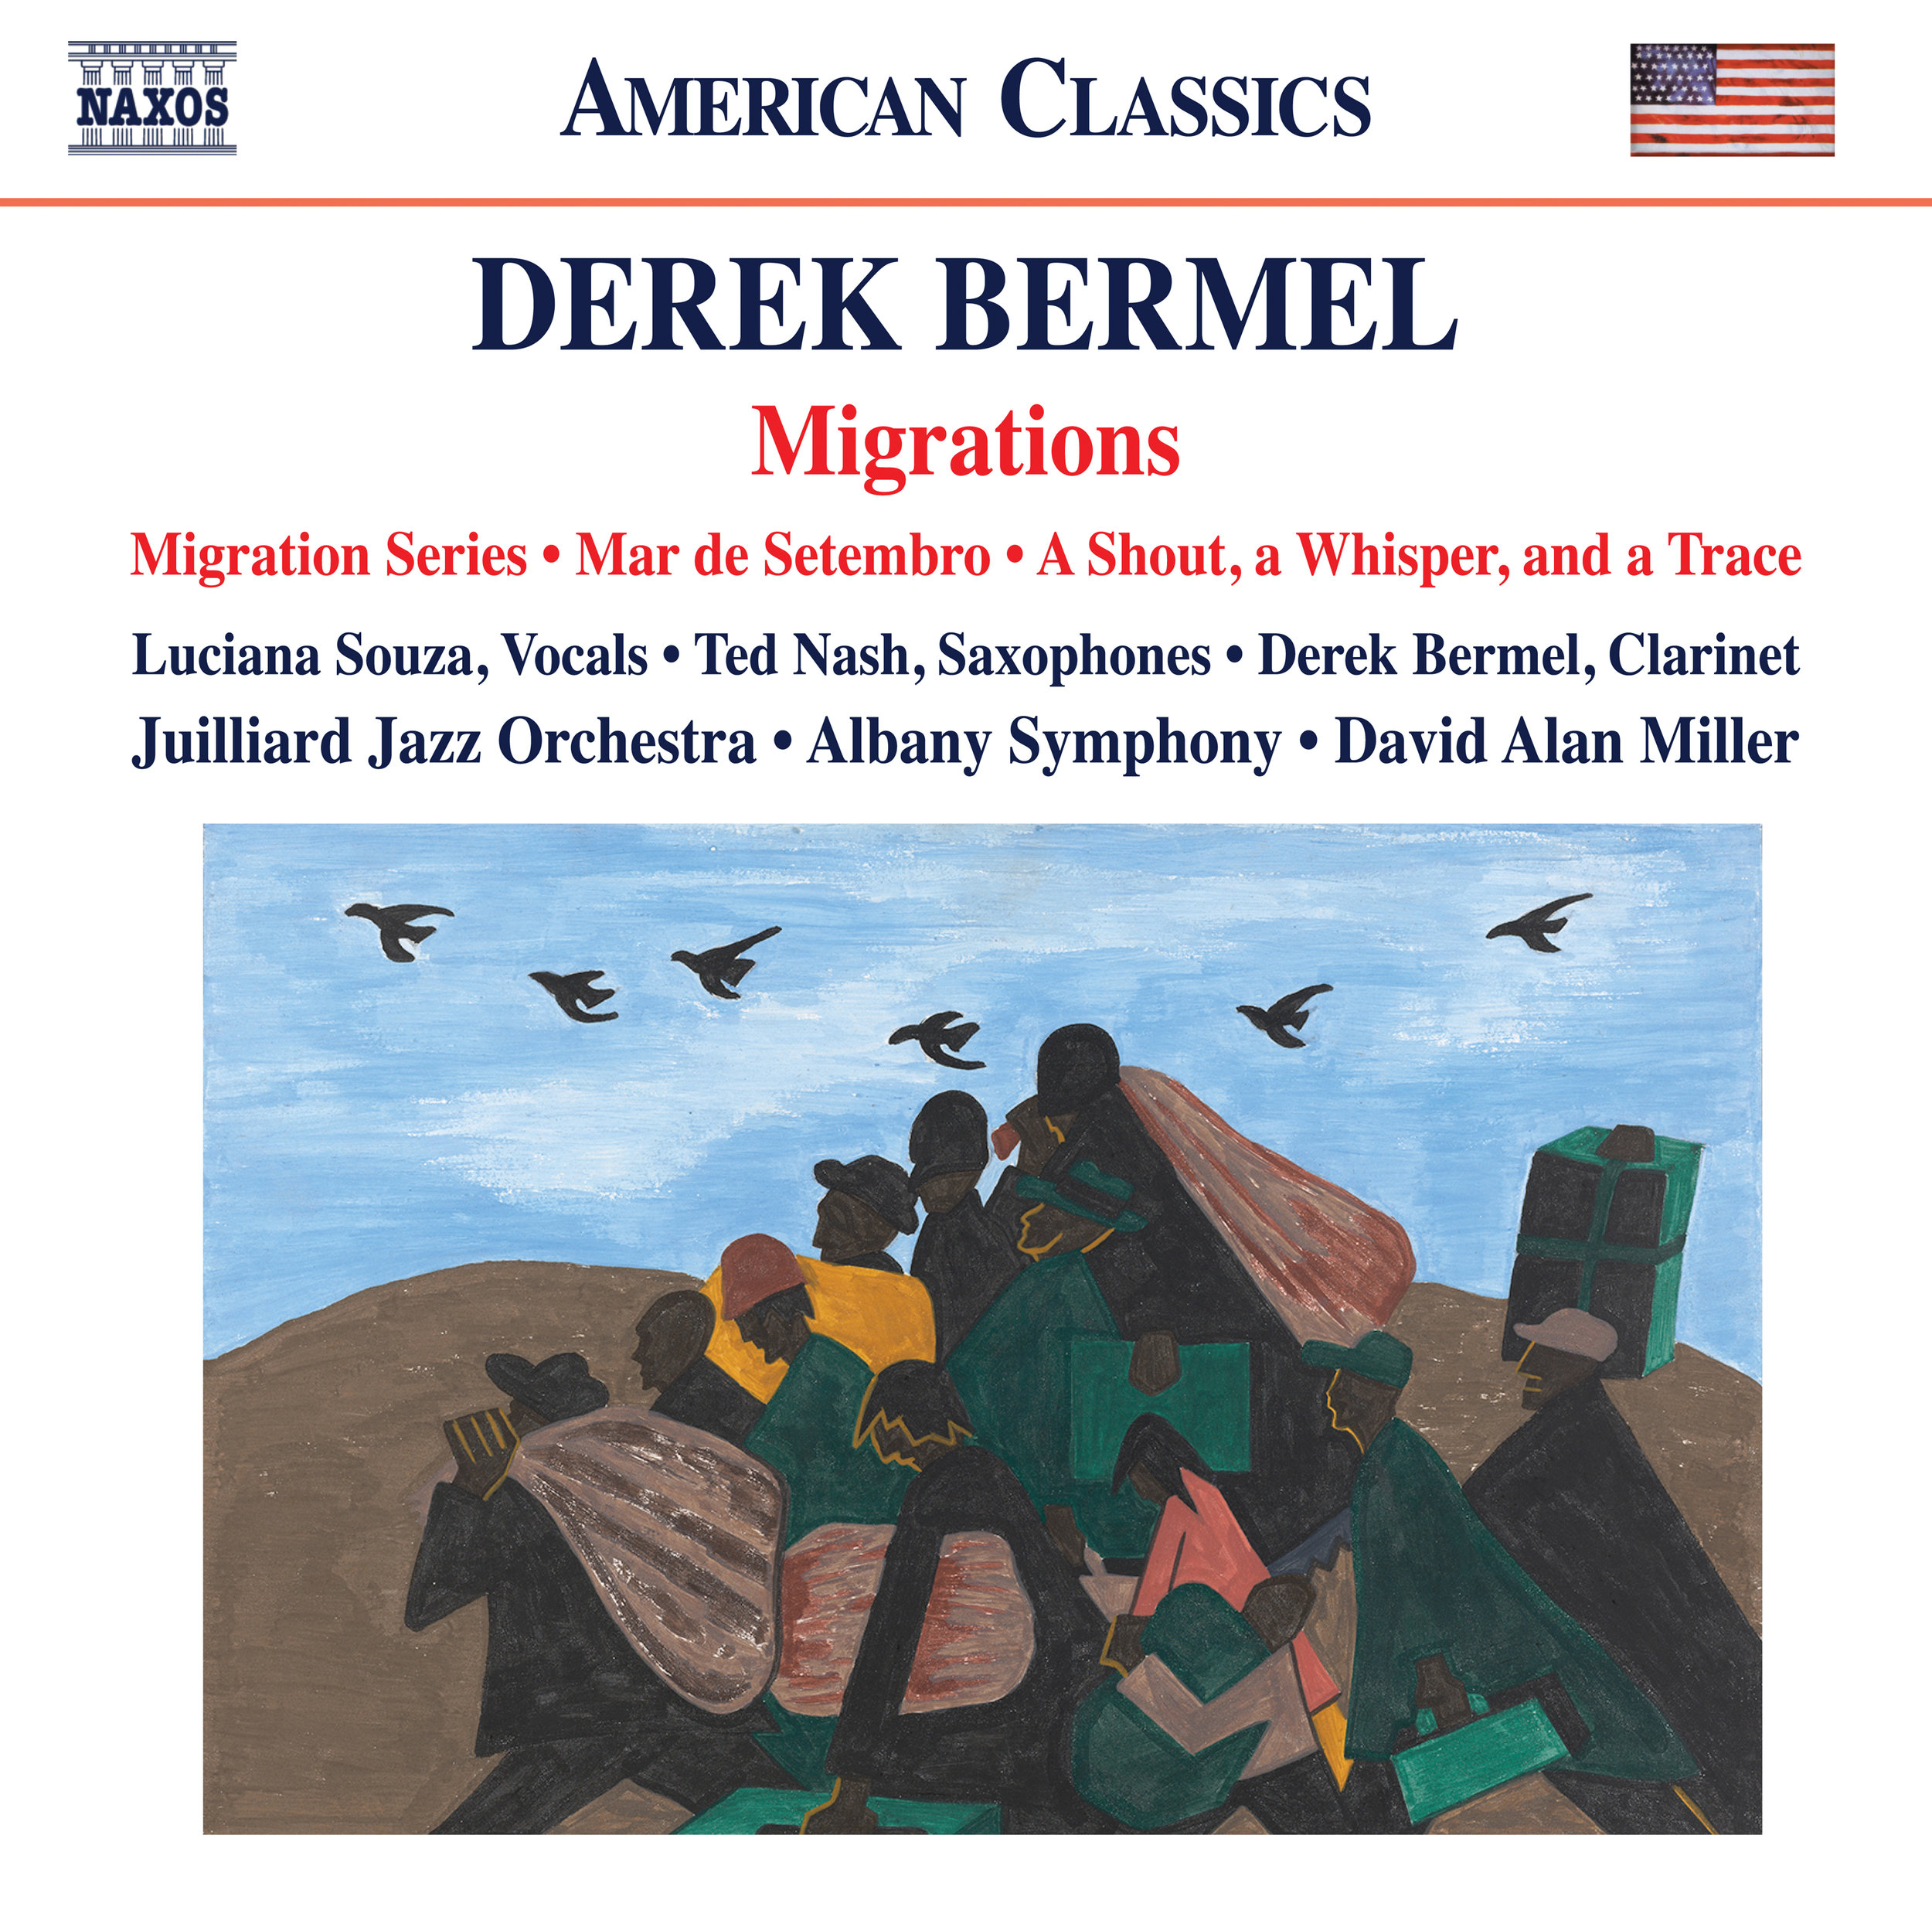 The album cover for Derek Bermel's latest Naxos release features Jacob Lawrence's  The Migration Series, Panel 3: From every southern town migrants left by the hundreds to travel north. , 1940–41.   Click here to see a full-size image of this painting and more!